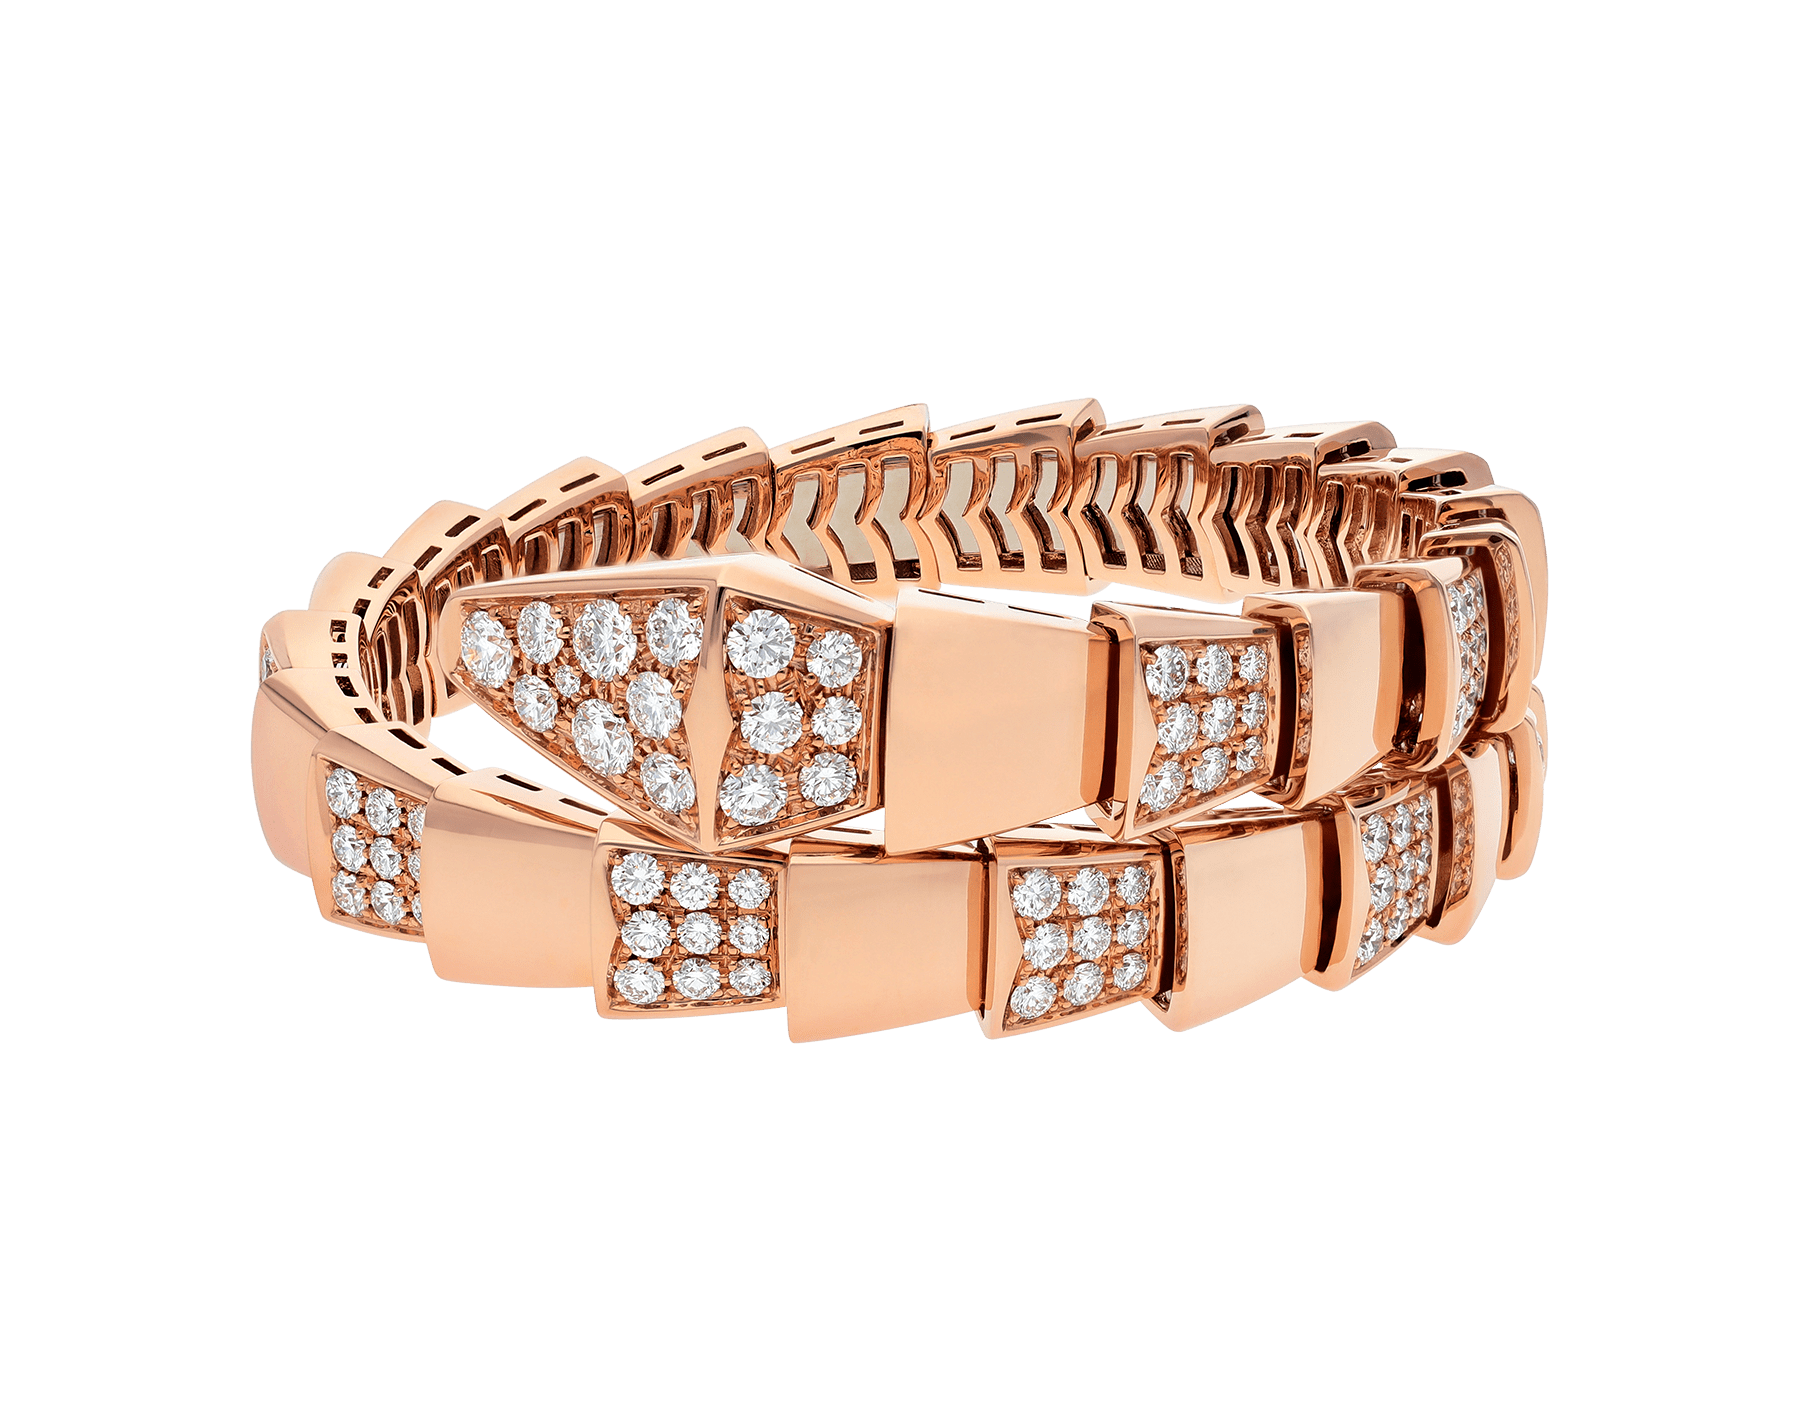 Serpenti Viper one-coil bracelet in 18 kt rose gold, set with demi pavé diamonds. BR855312 image 2